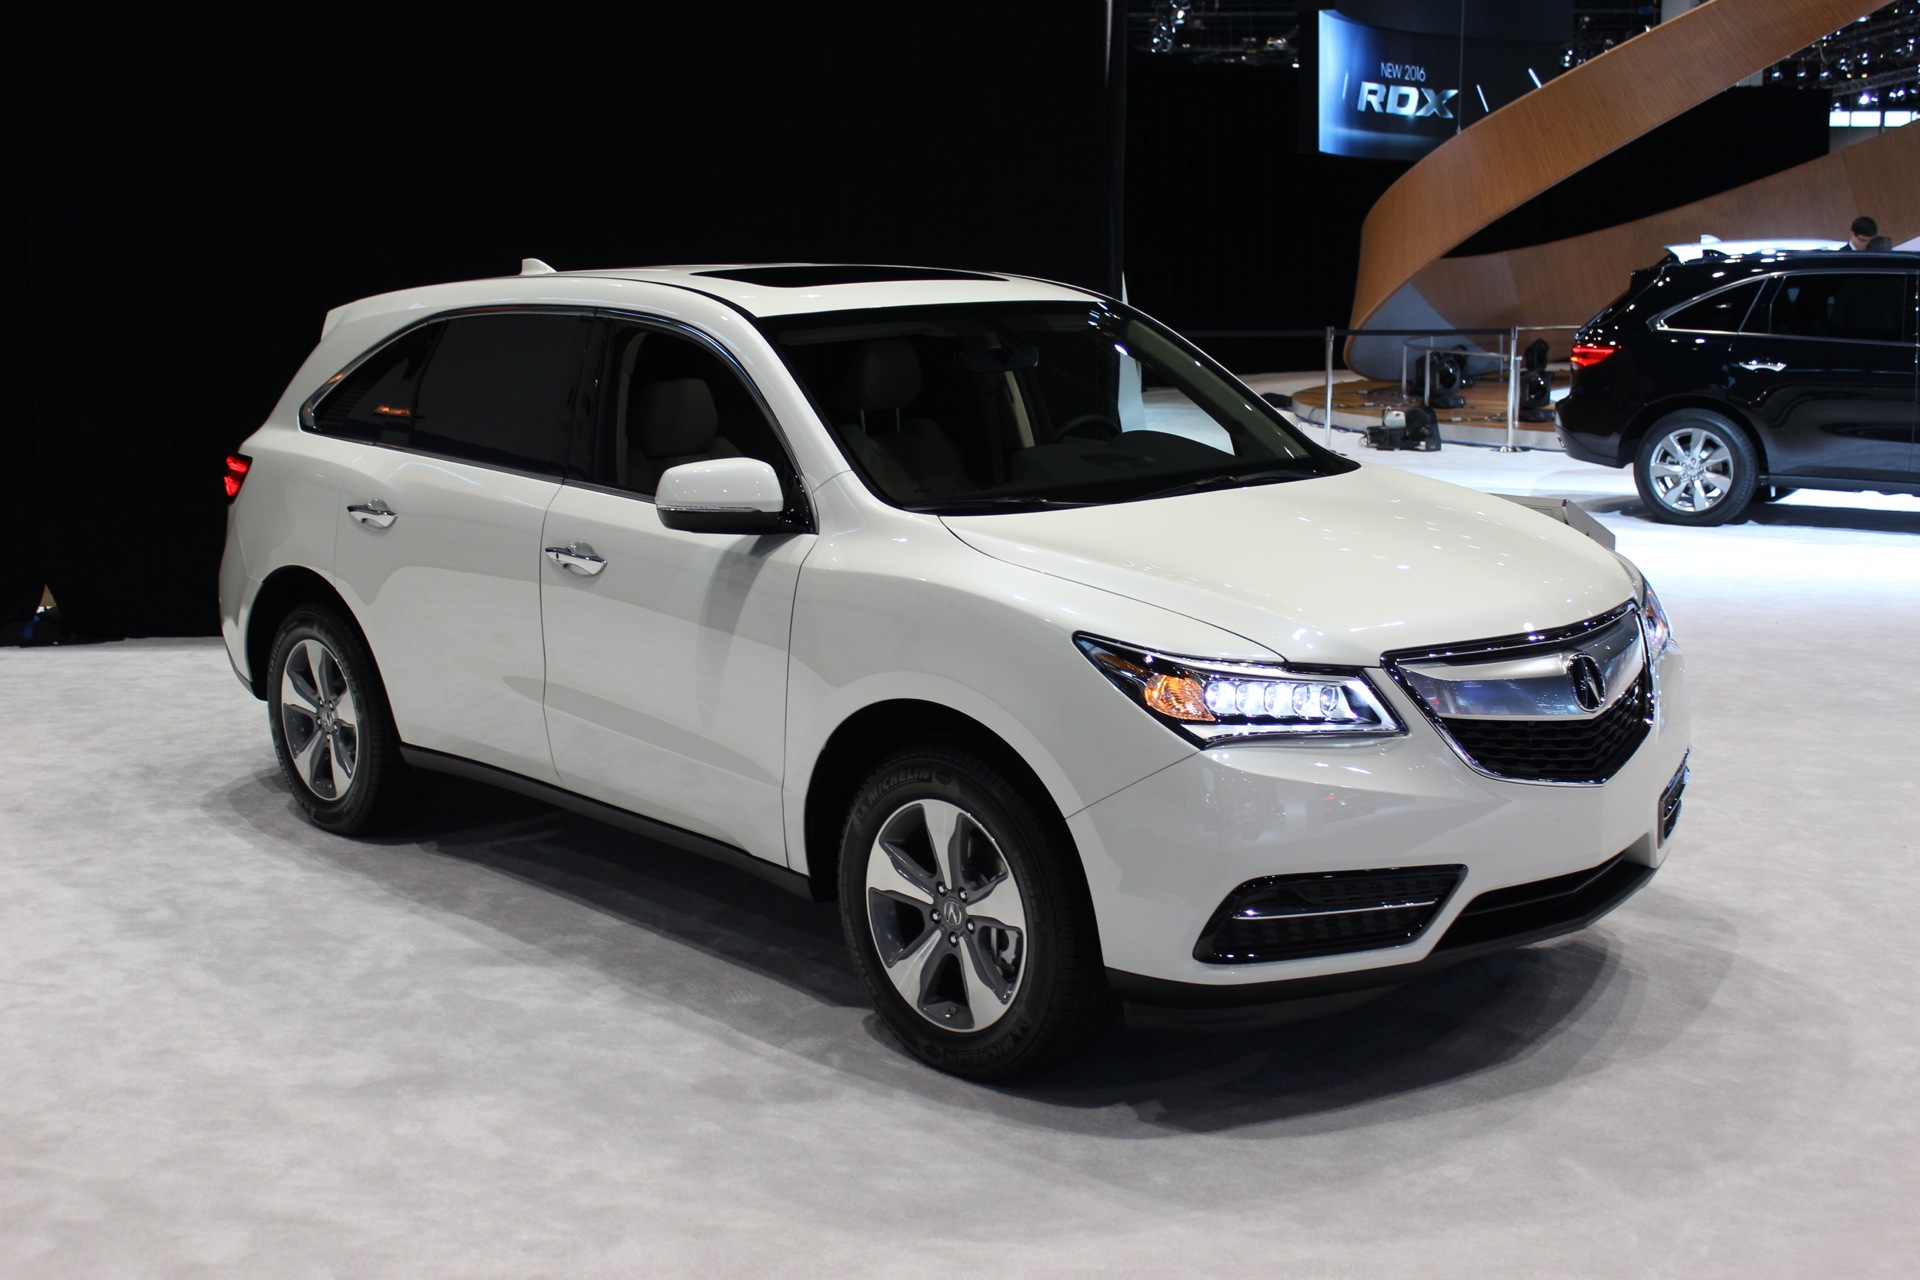 2016 Acura MDX Summary Review - The Car Connection